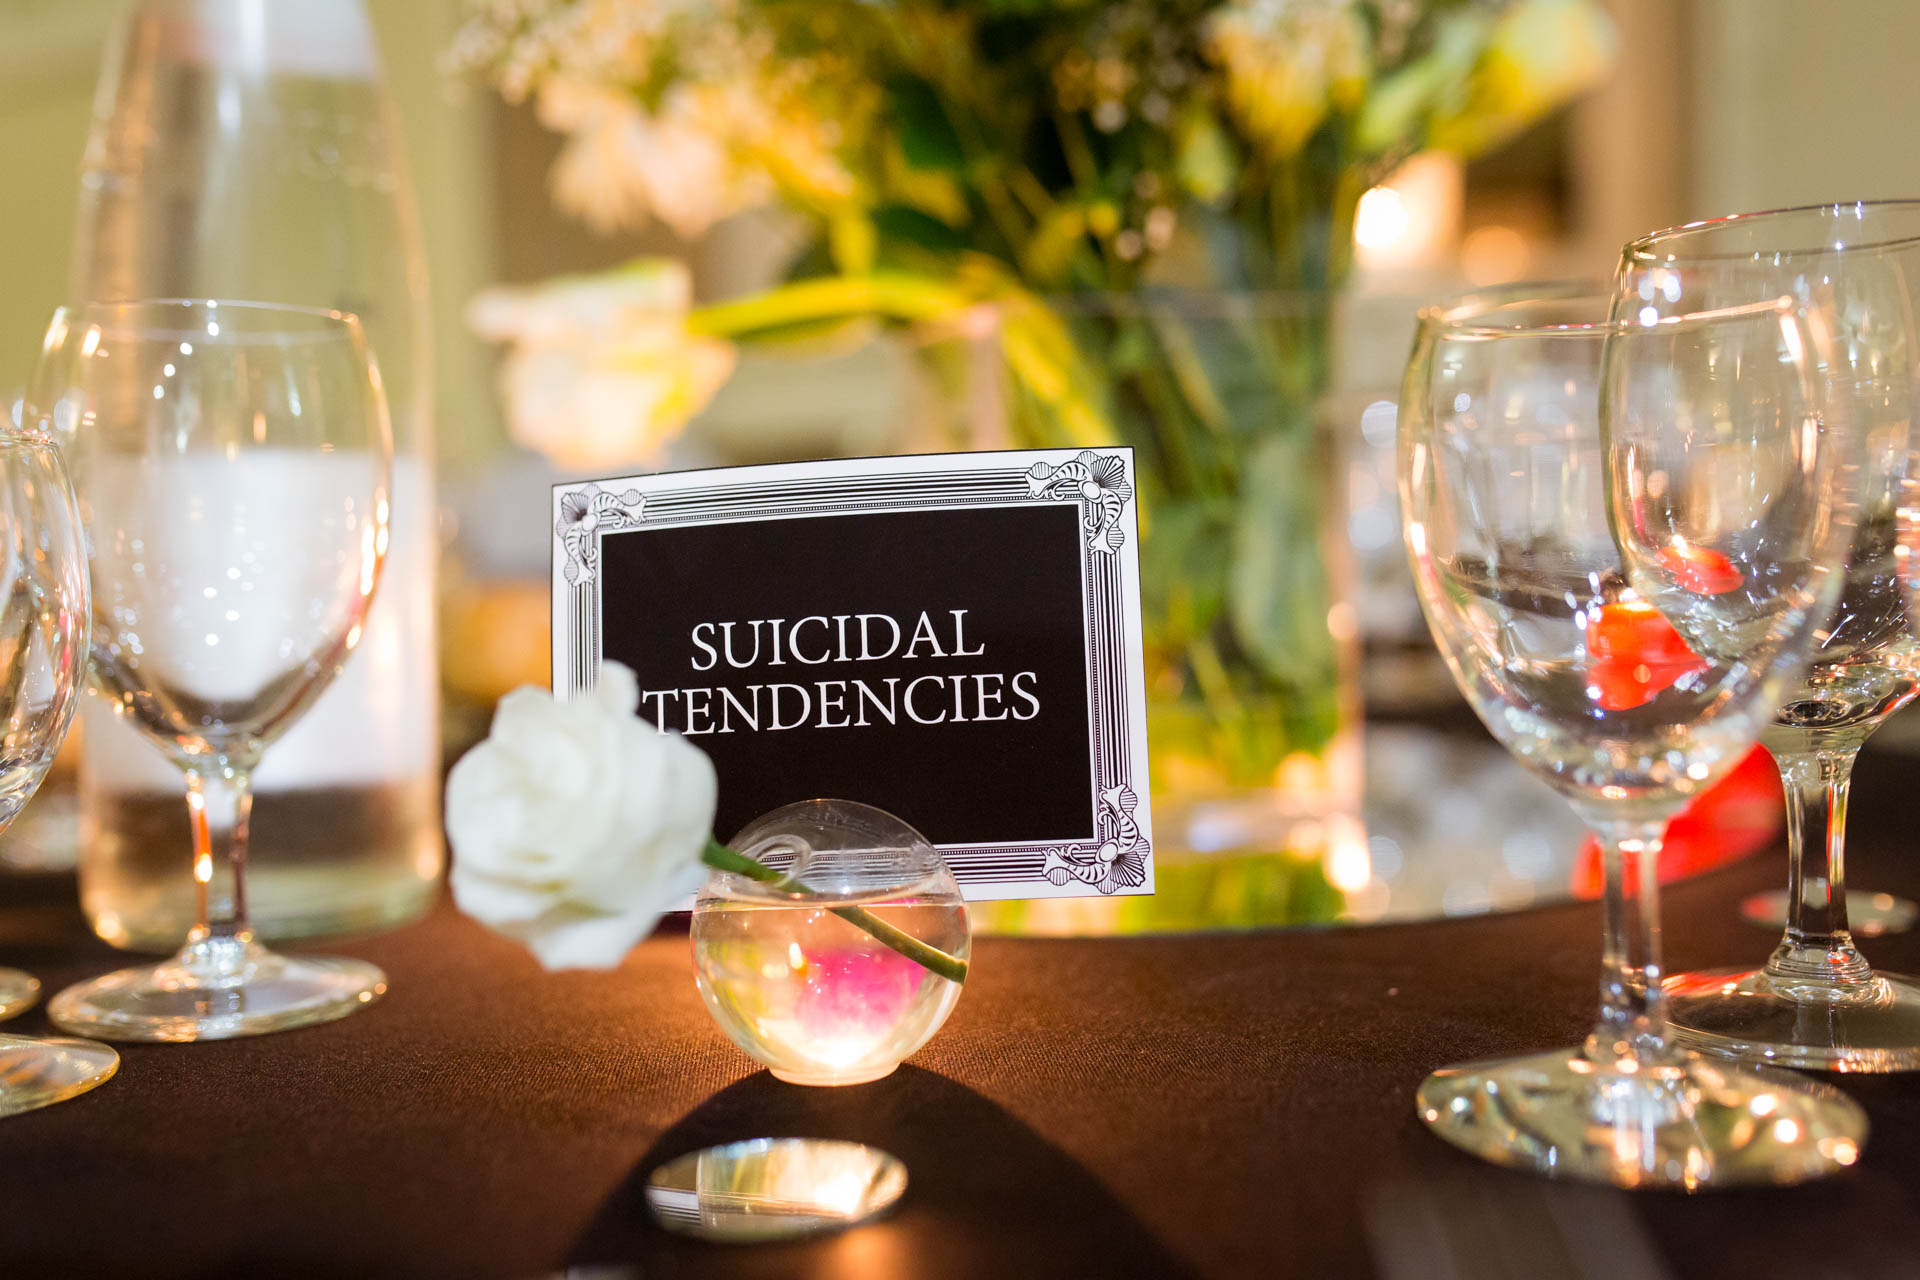 Photographe de Mariage Rock suicidal tendencies